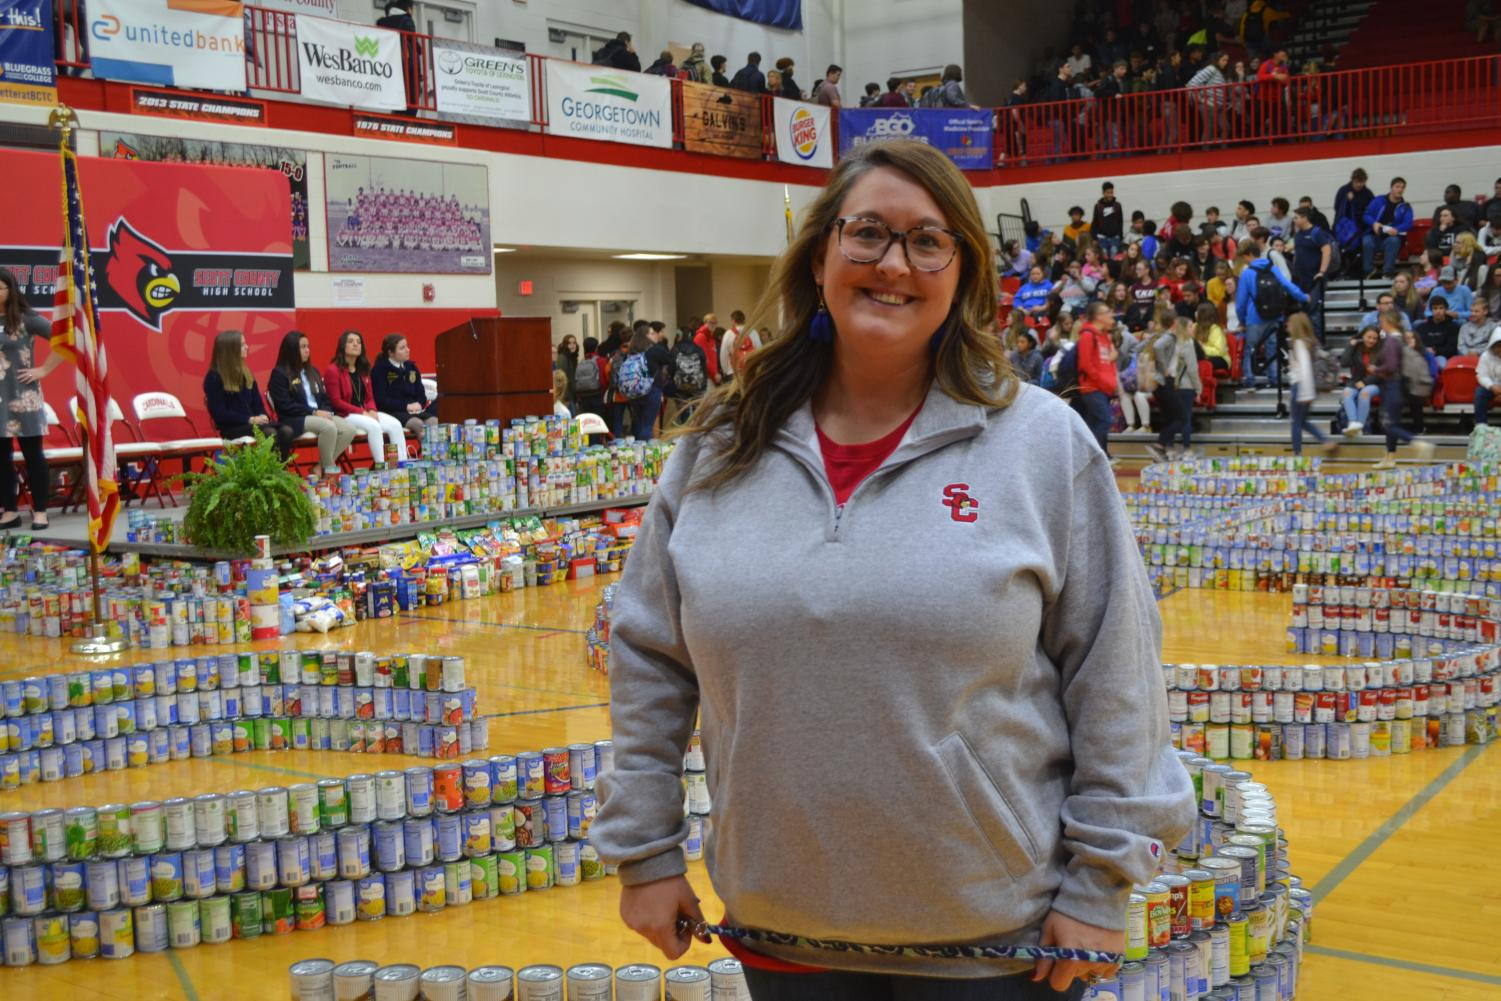 SCHS+Canned+Food+Drive+Feeds+the+Families+of+Scott+County